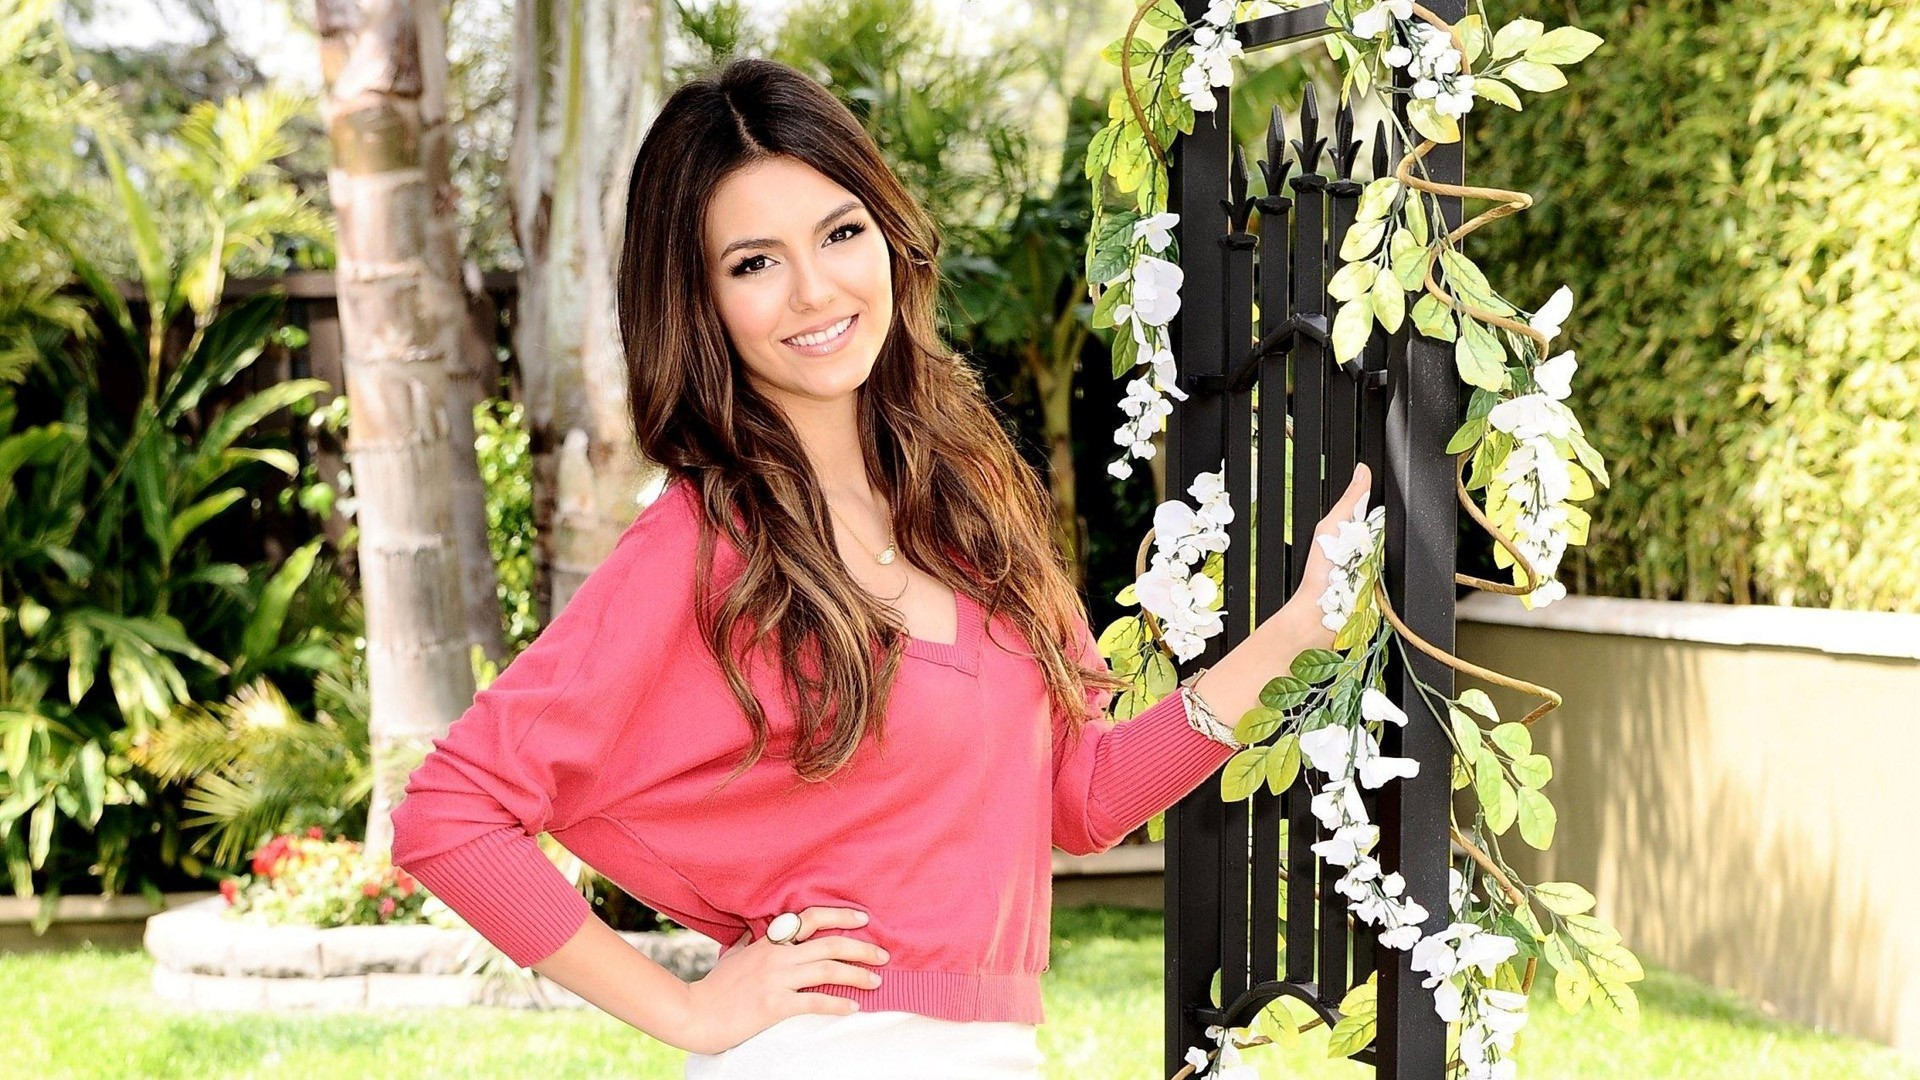 Victoria Justice Wallpapers ID358526